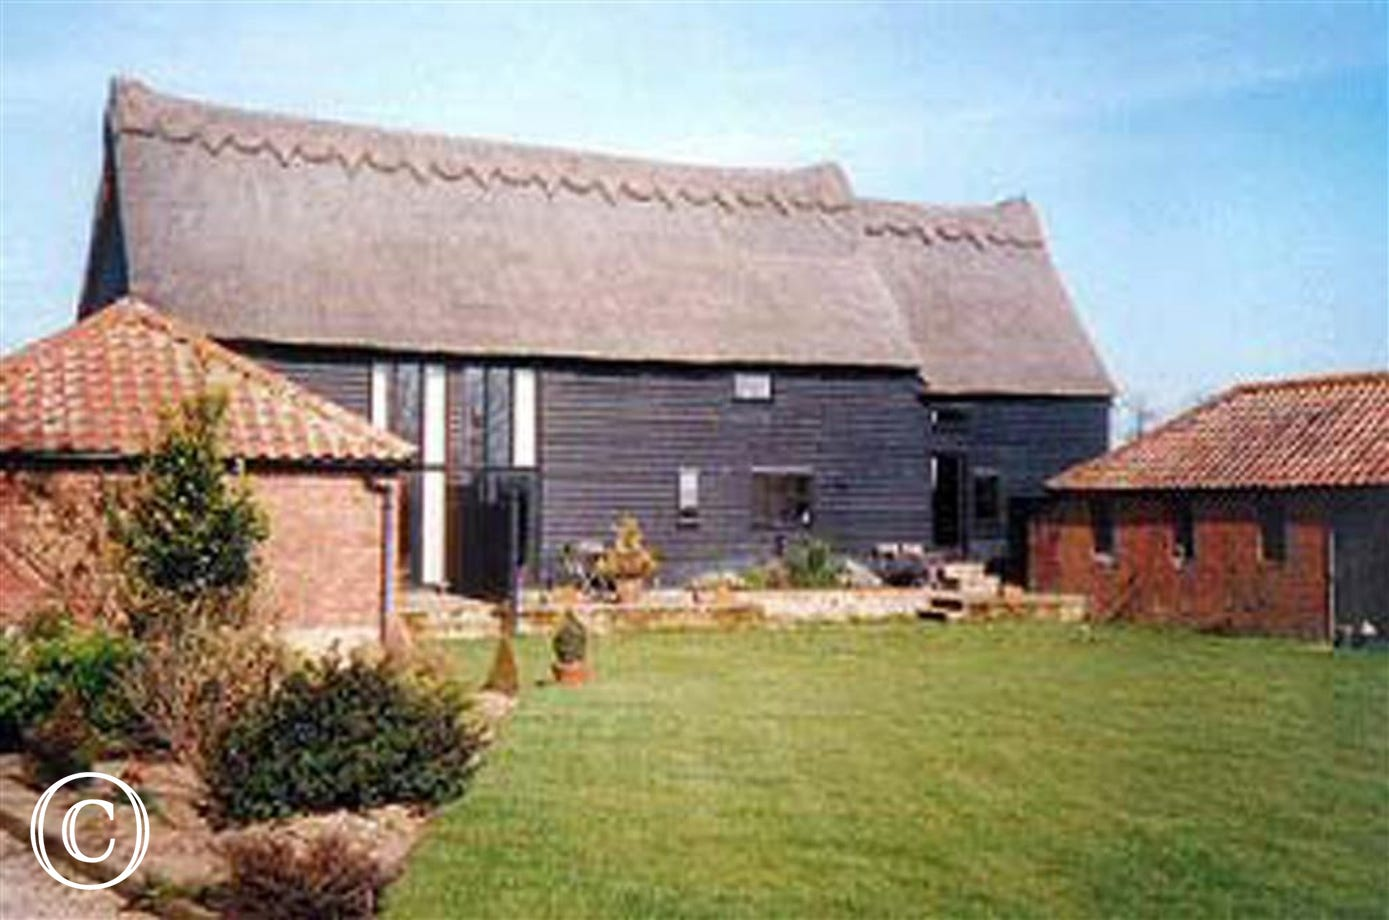 Valley farm Barns is a converted barn split into four self-catering properties.